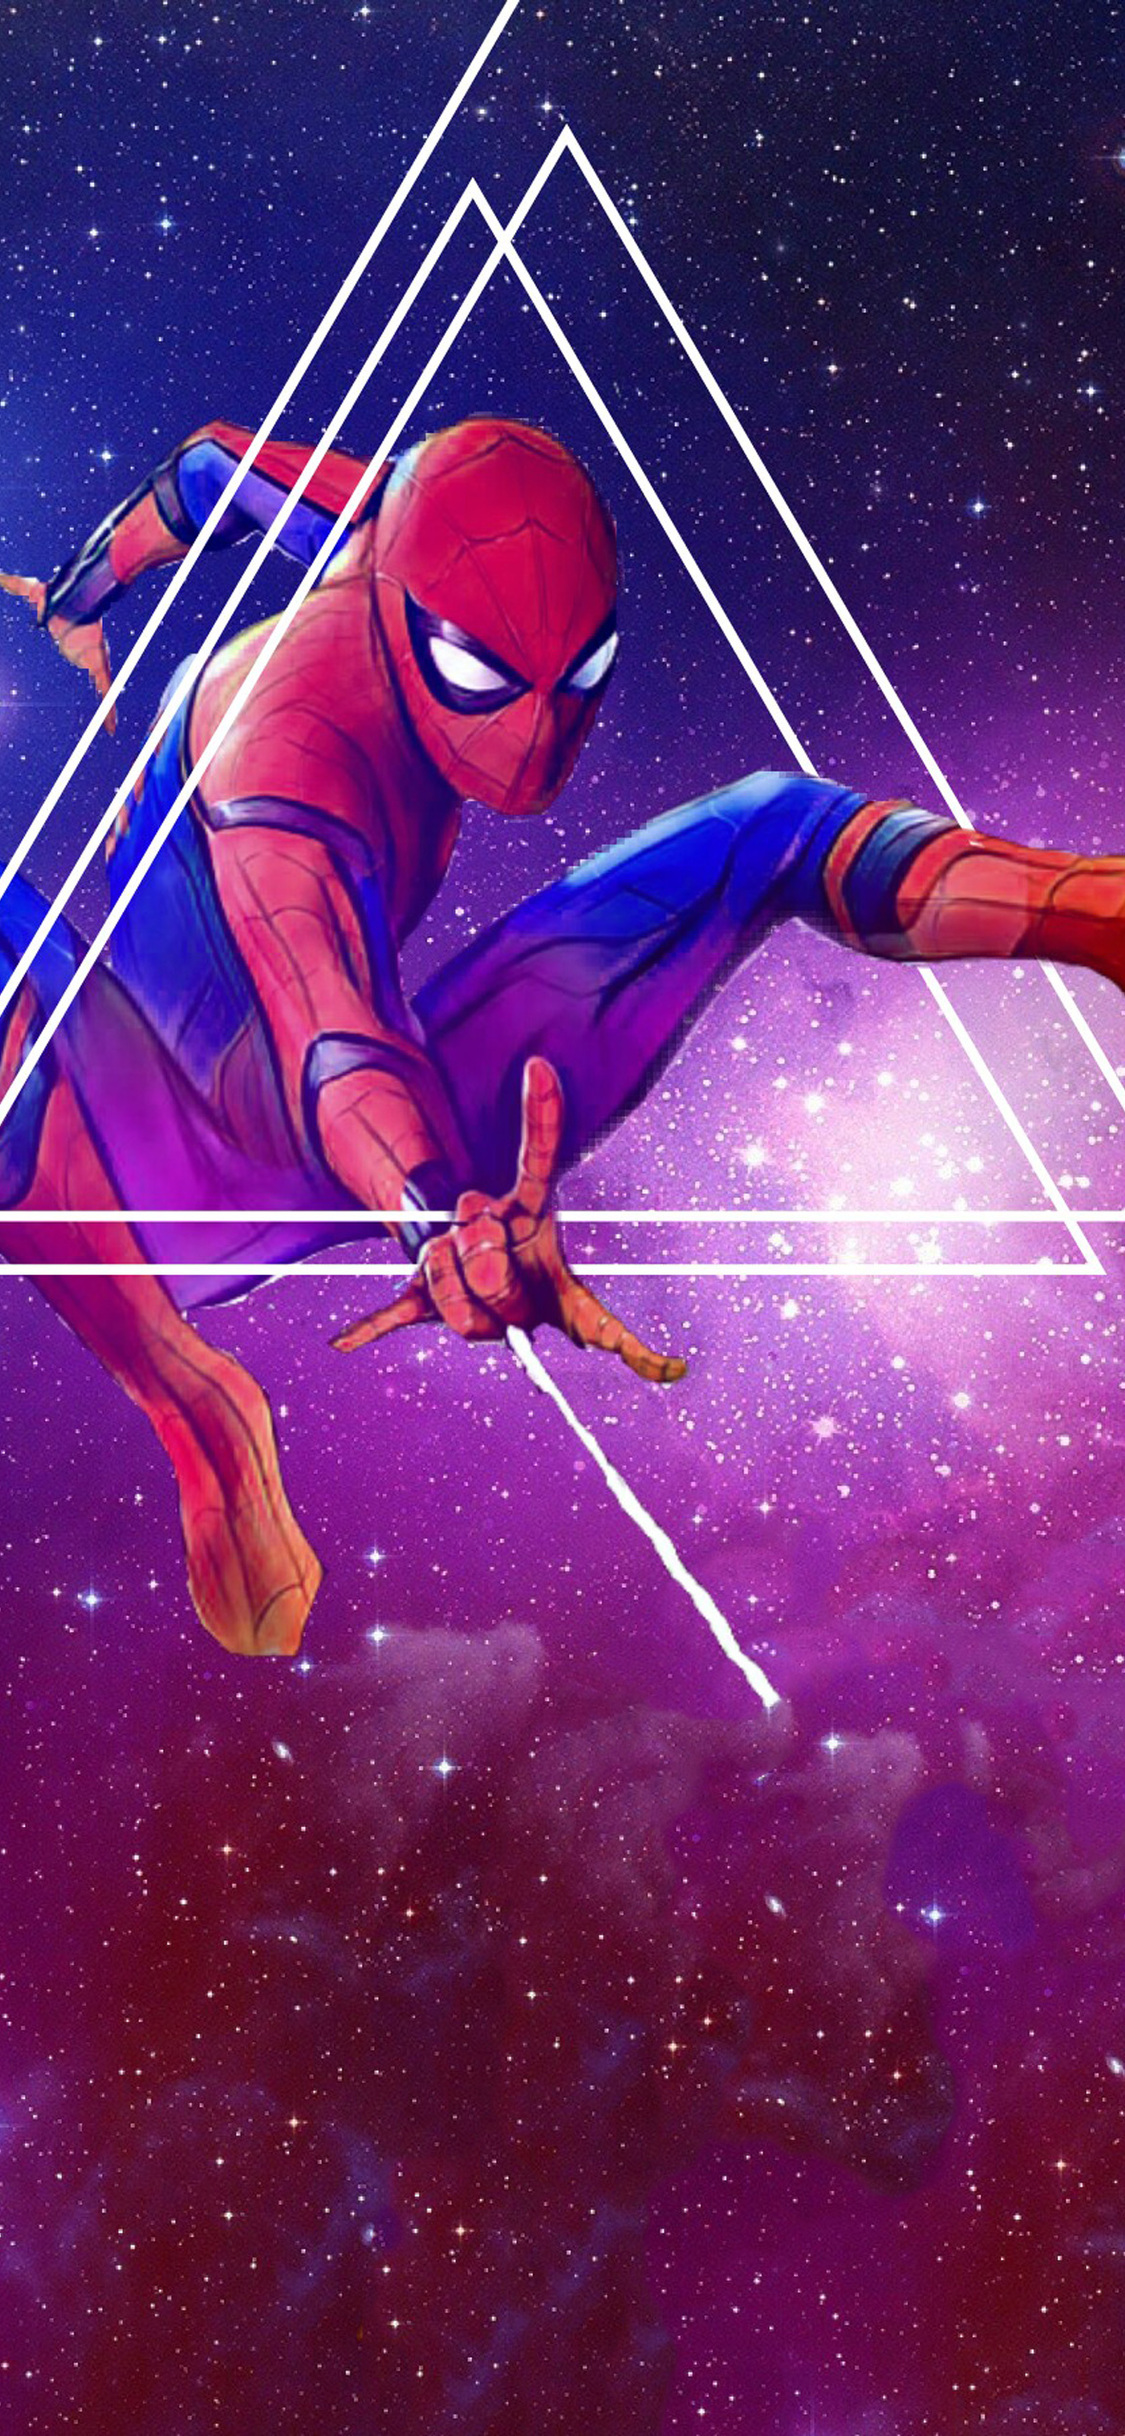 1125x2436 spiderman avengers infinity war artwork iphone - Iphone 6 spiderman wallpaper ...